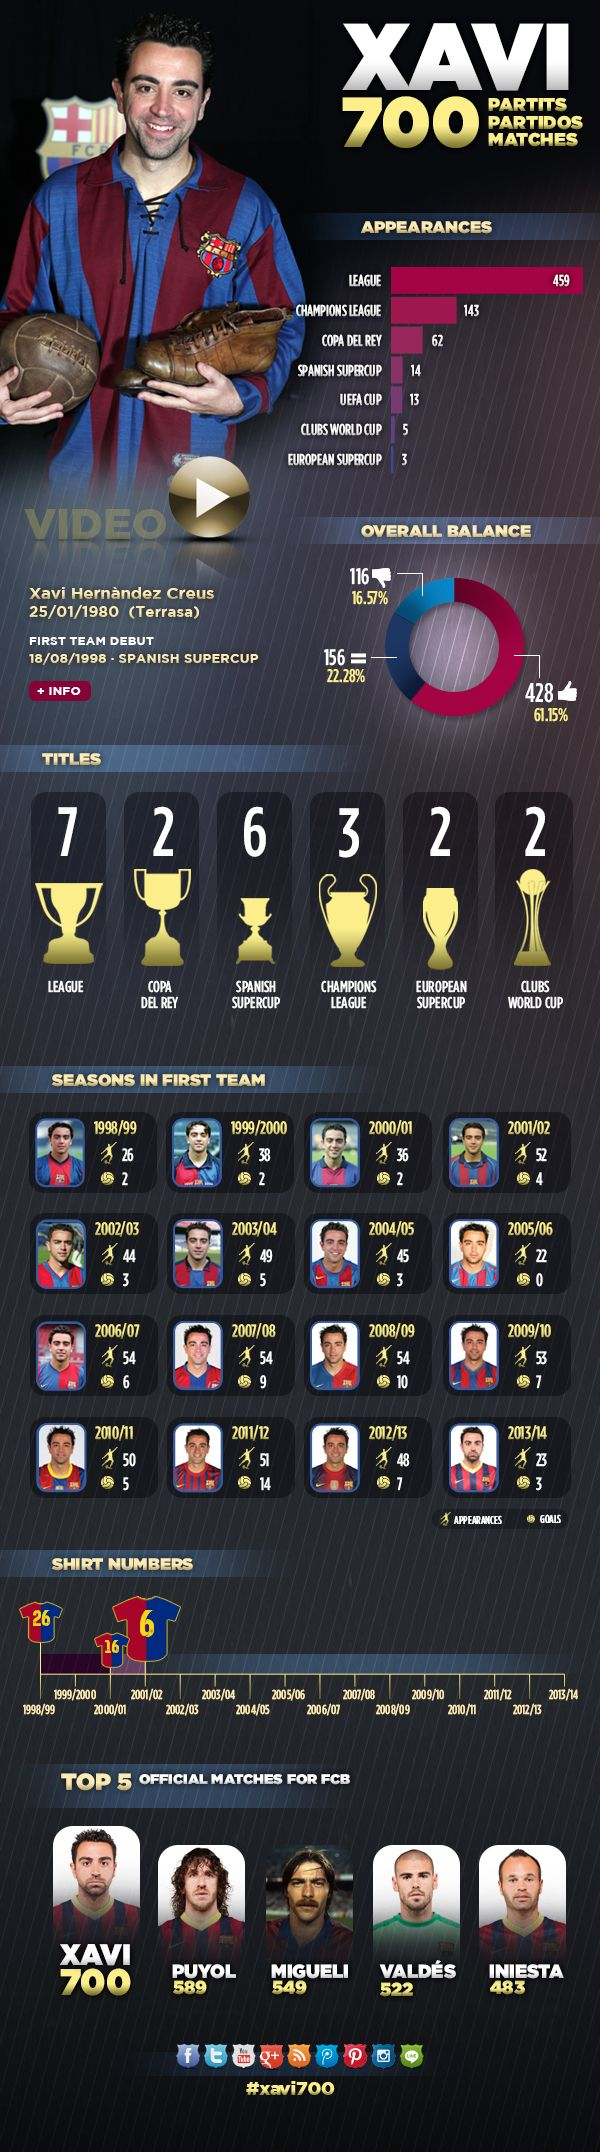 He is my favourite Xavi's 700 appearances in detail An interactive factsheet about the Barça midfielder's achievement: matches, titles, goals...